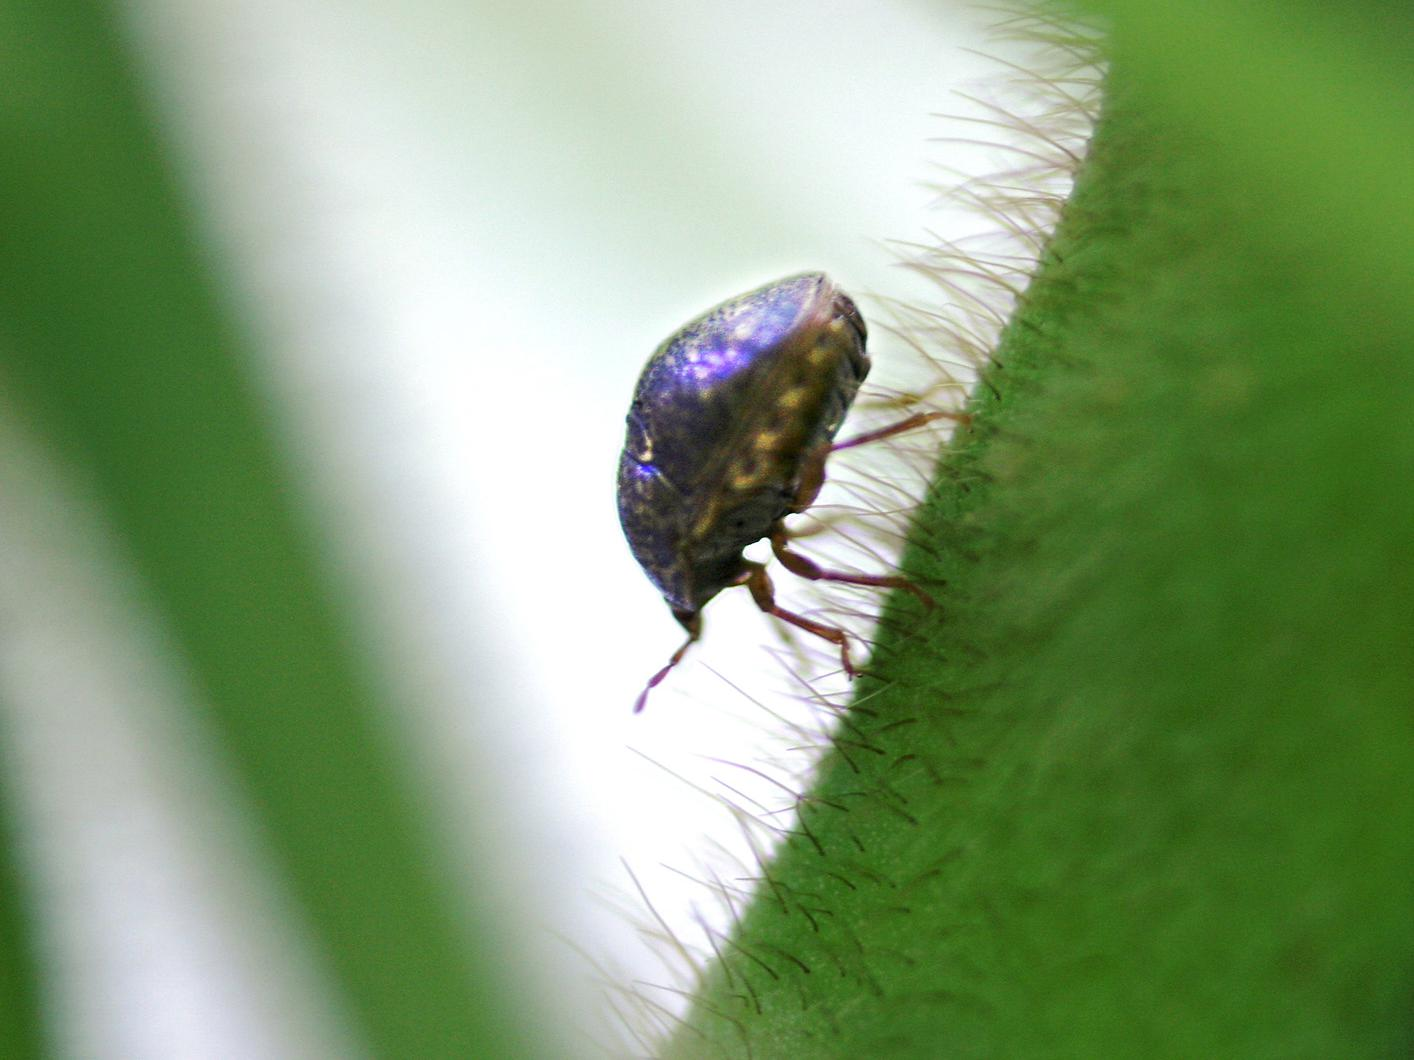 Kudzu bugs, an invasive soybean pest from Asia, were discovered mid-July in Vicksburg. Mississippi State University Extension Service entomologists are monitoring the state's soybean fields and say the insect can be controlled. (Photo by USDA-ARS /Richard Evans)